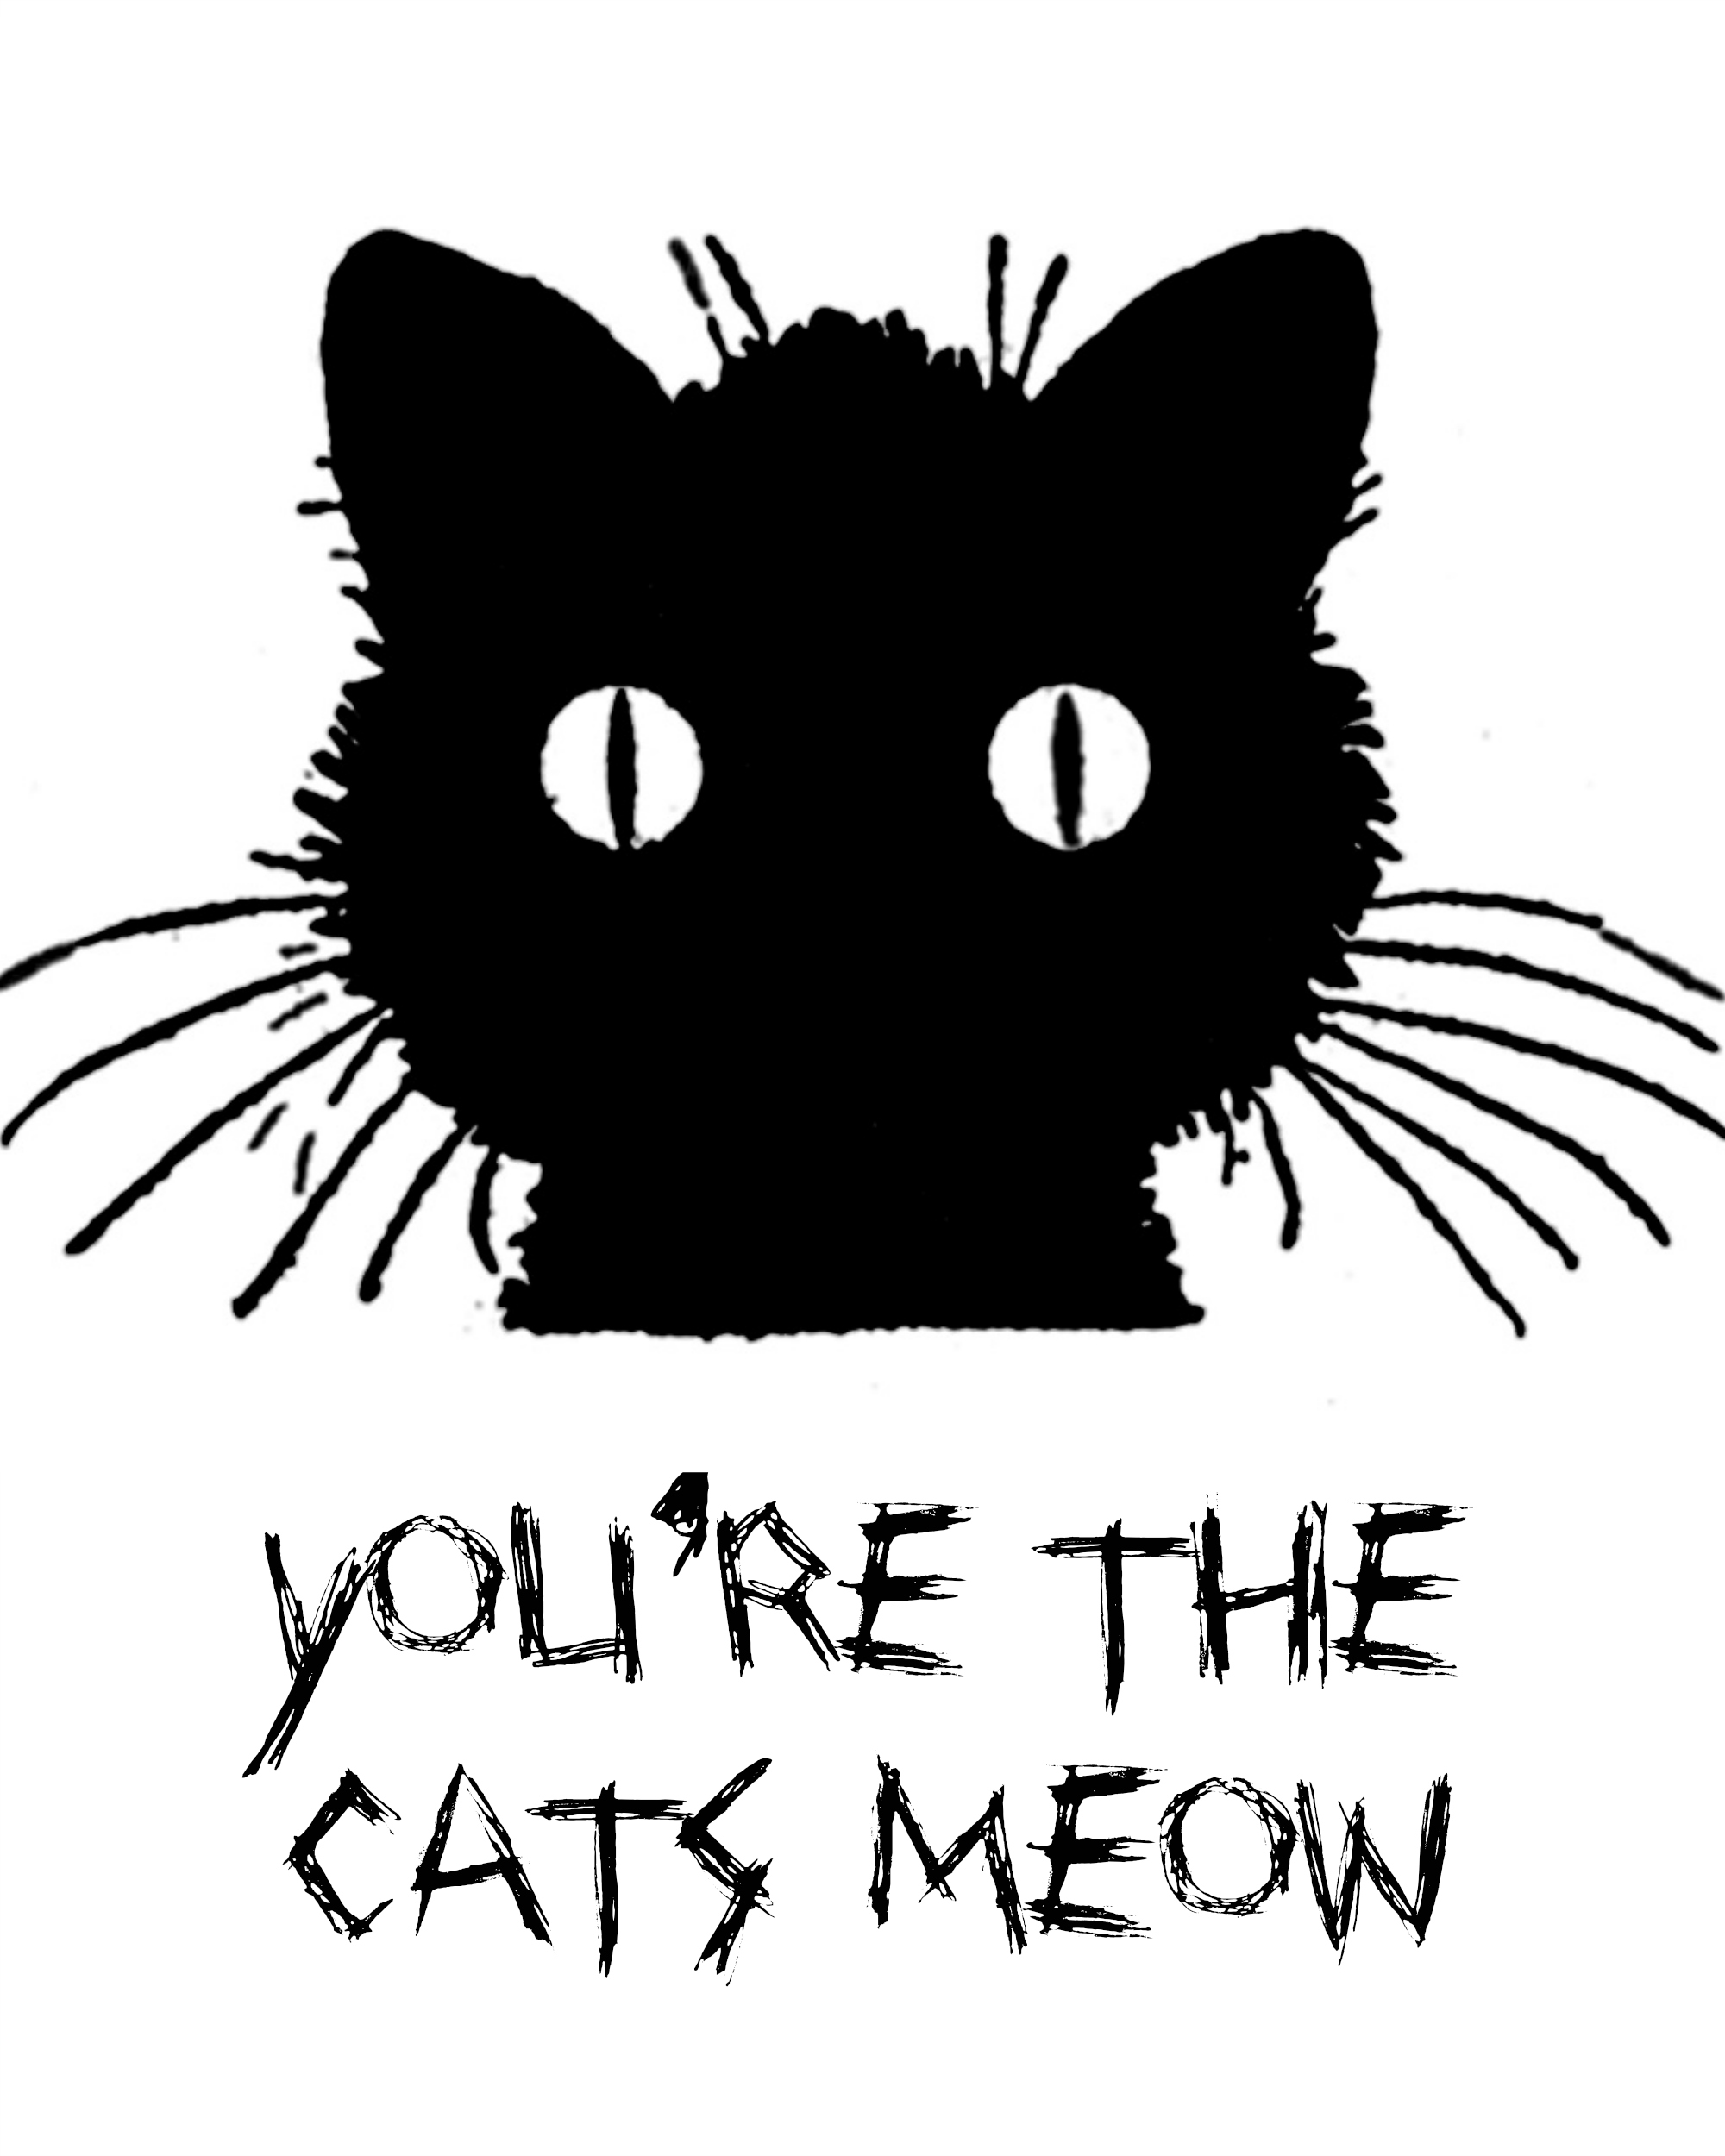 Worksheets For Cats Meow : Free halloween printables